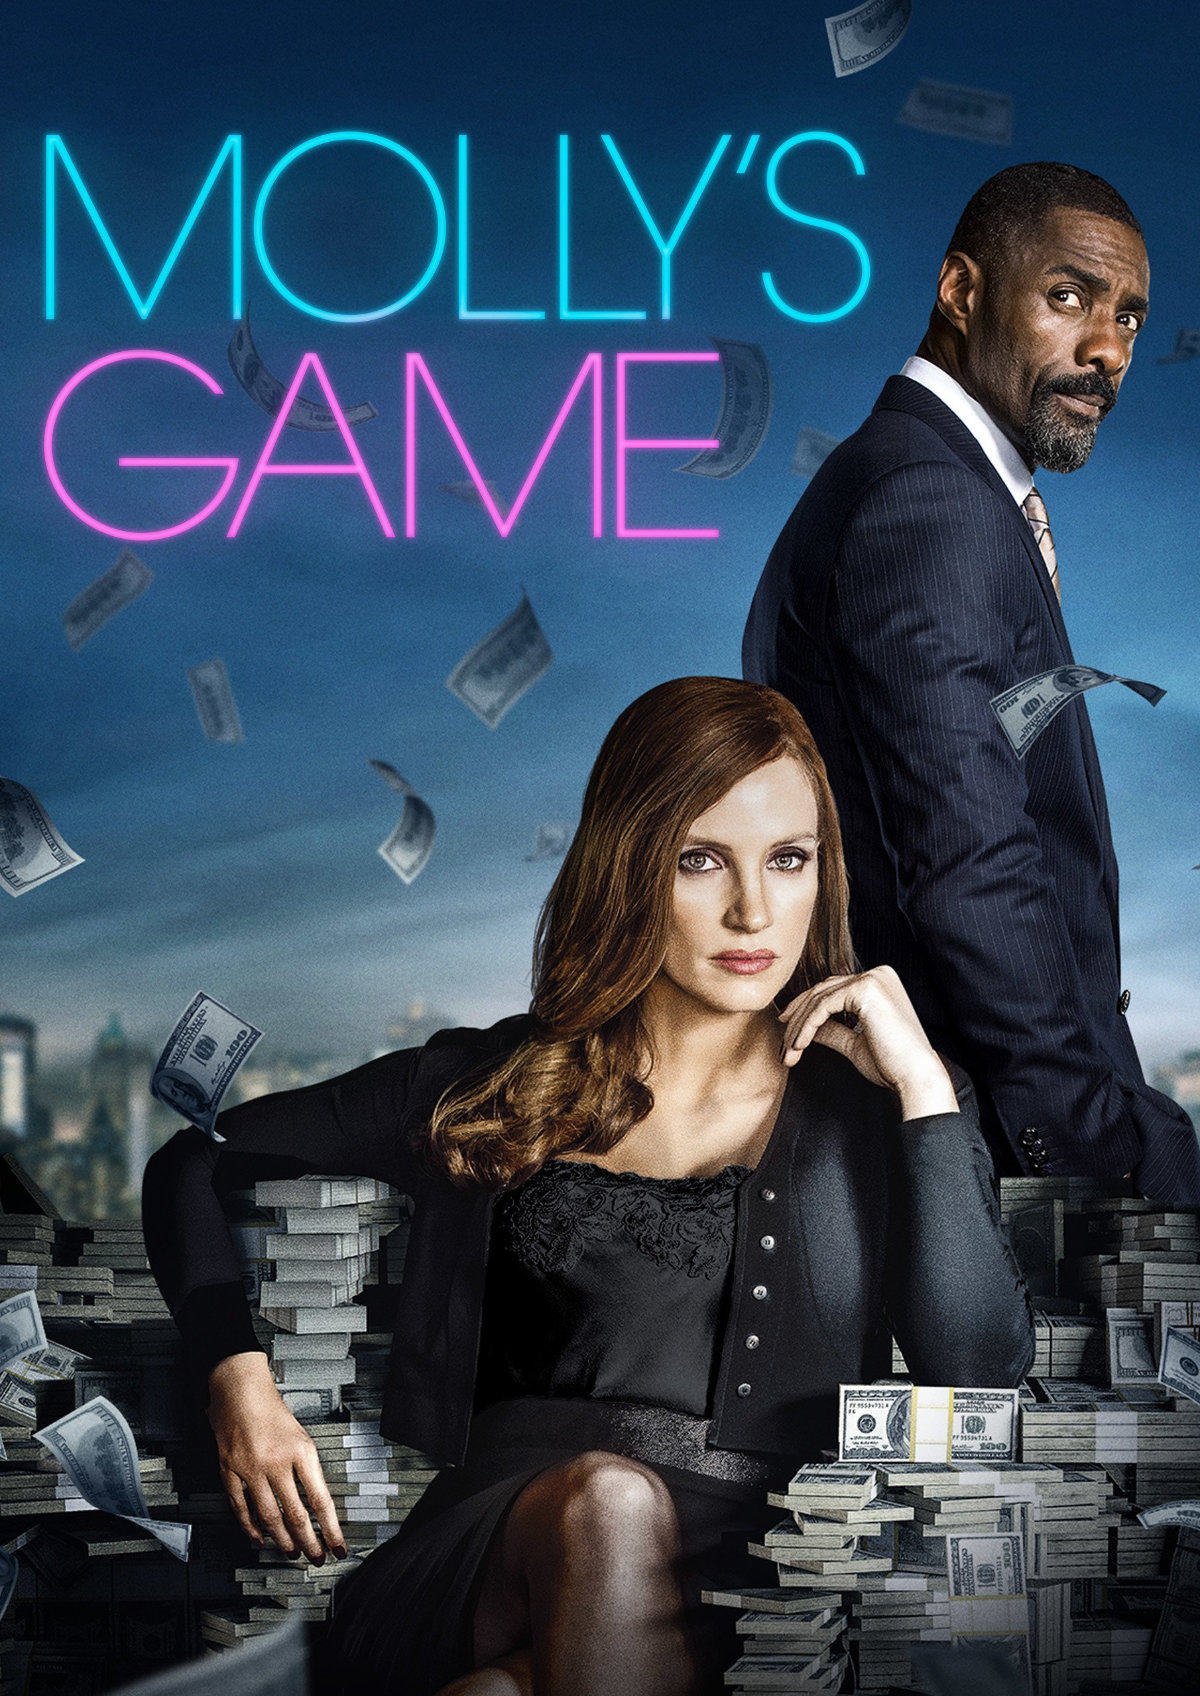 'Molly's Game' movie poster